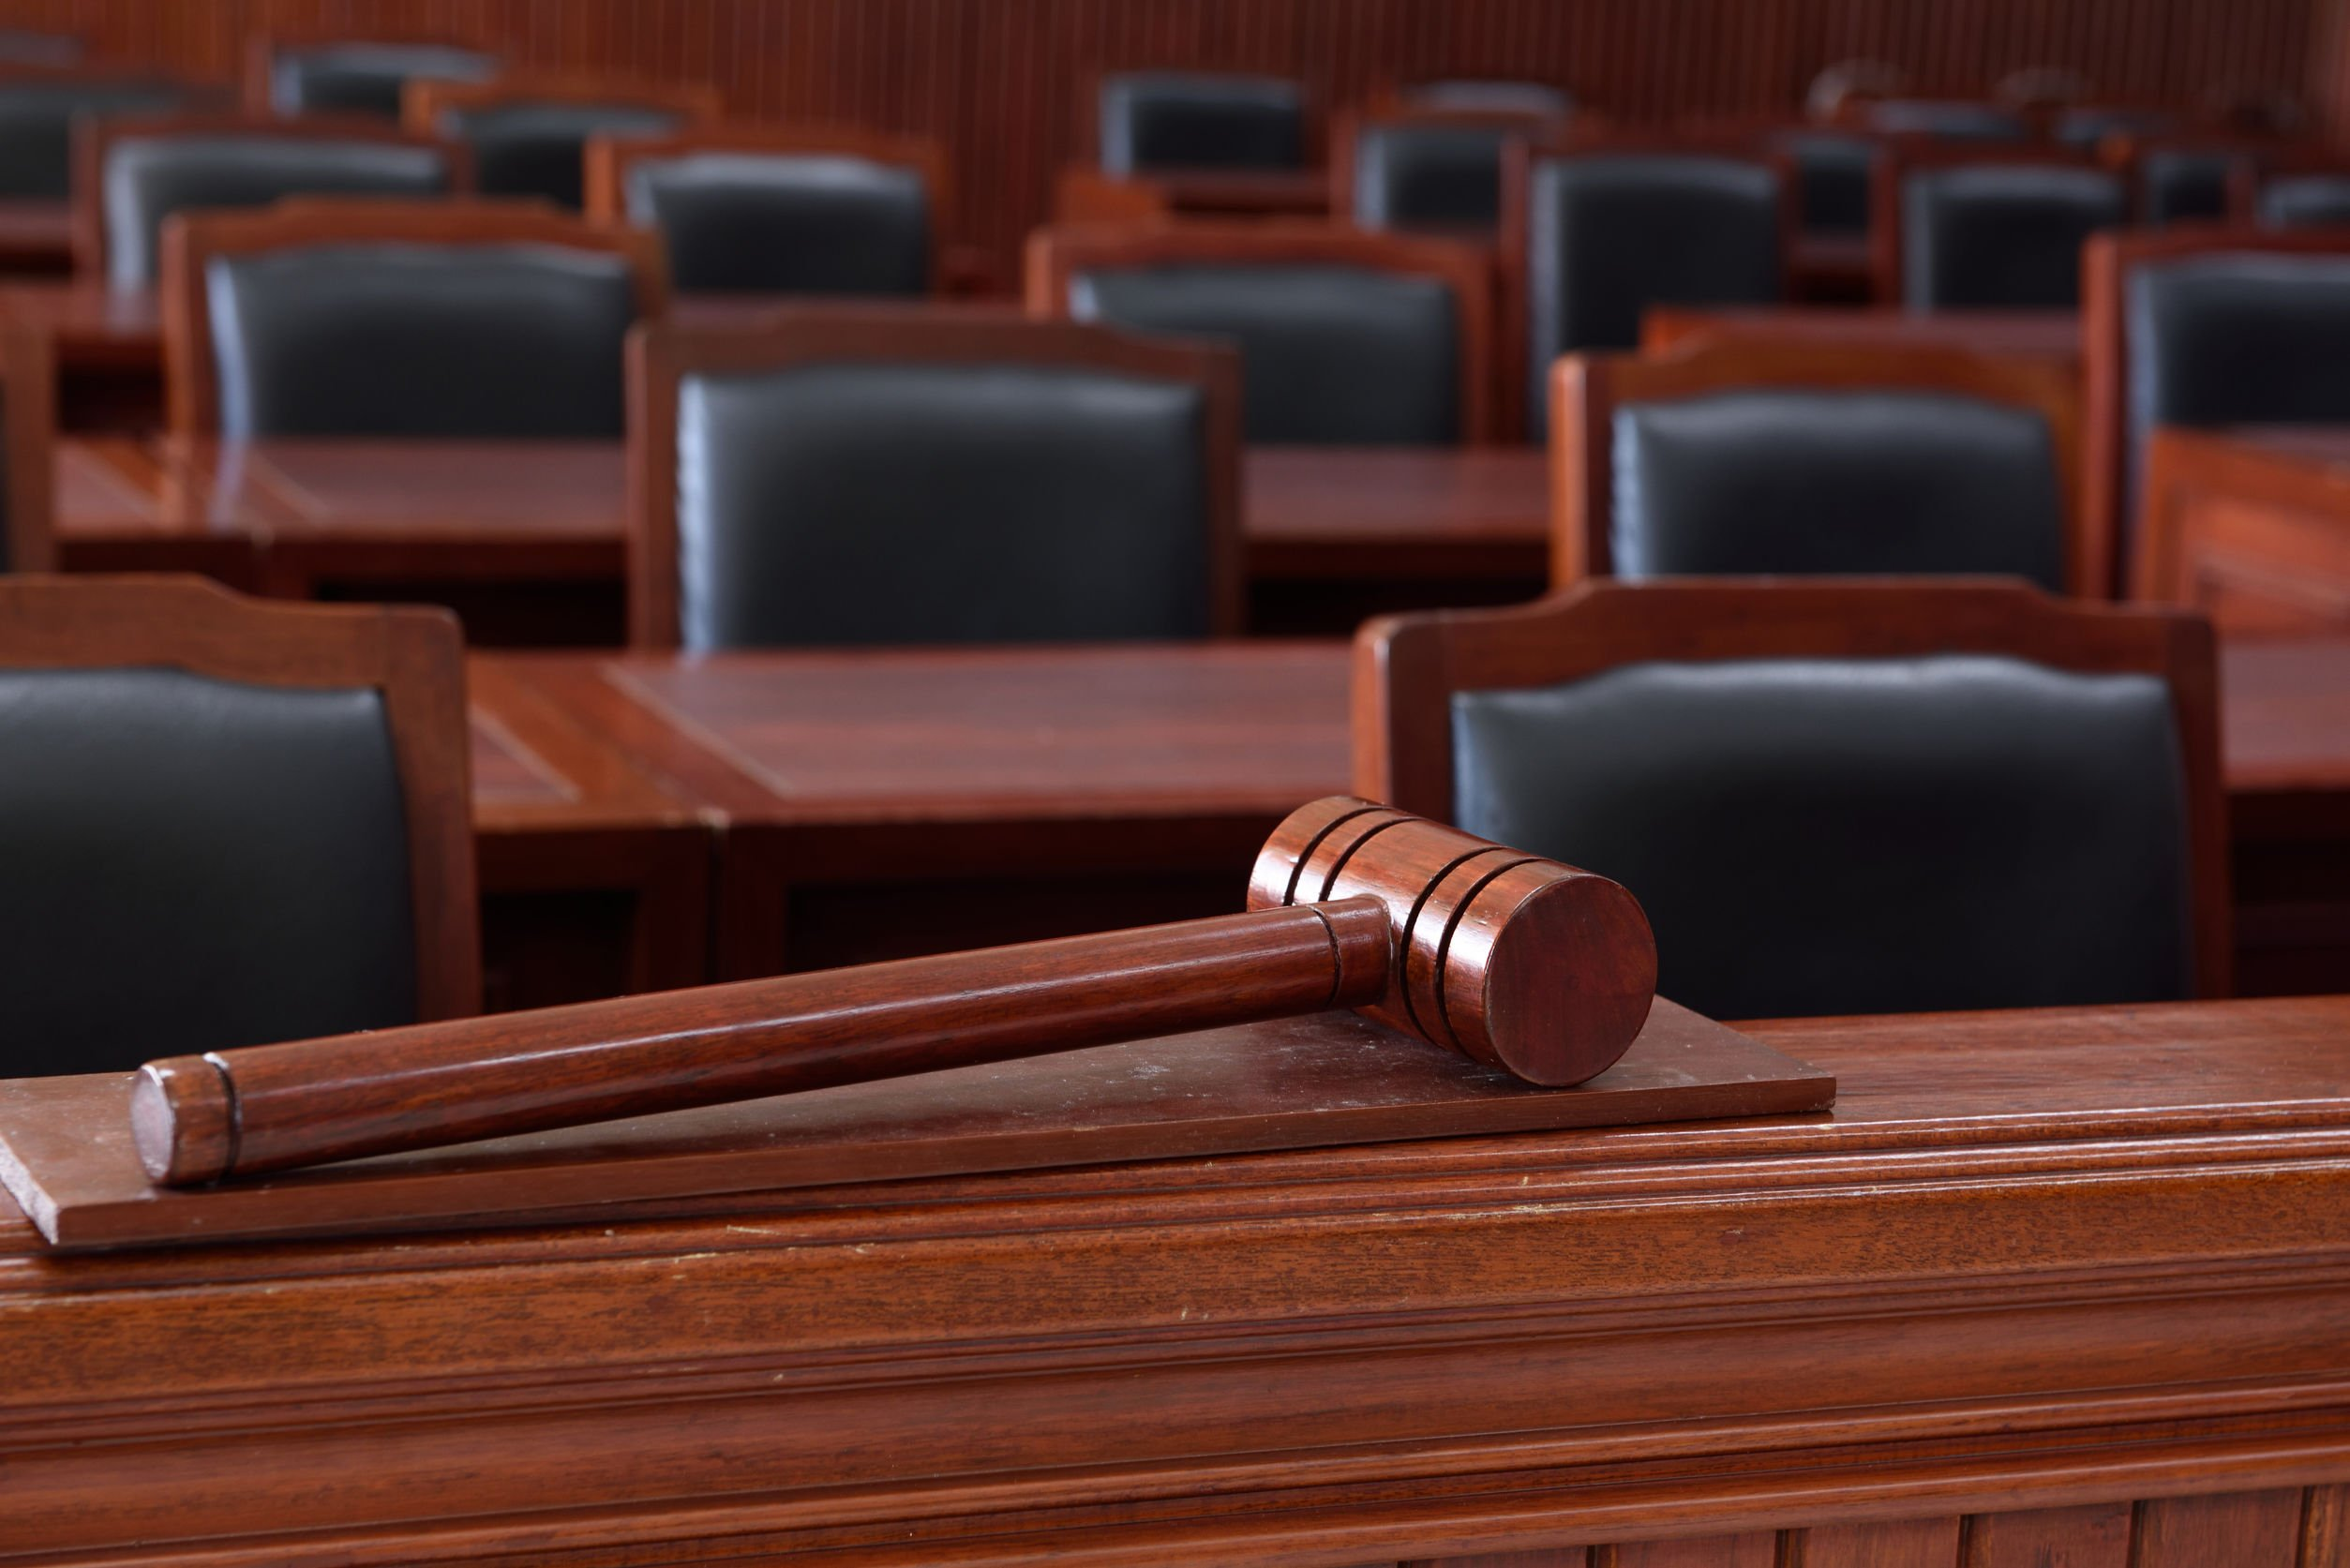 Nearly 50 people have been ordered to appear before a Mohave County judge. (Source: 123rf.com)